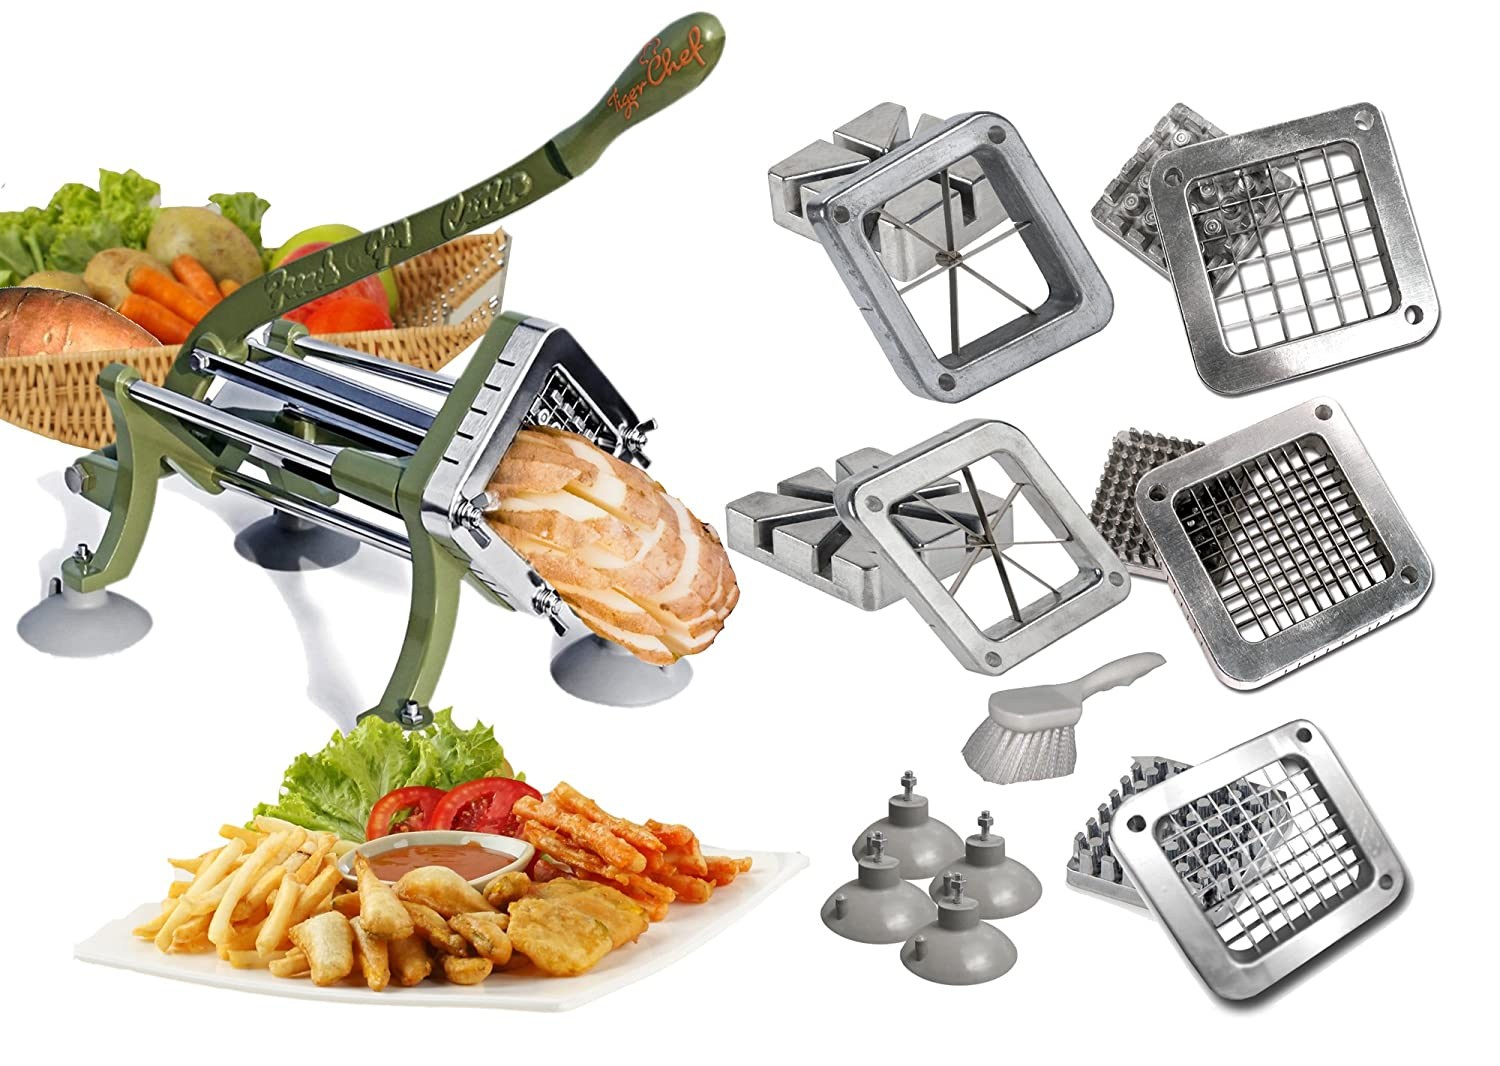 Tiger Chef Heavy Duty Commercial Grade French Fry Cutter with Suction Feet Complete Set - includes 1/4, 3/8, and ½ inch and 6 and 8 Wedge Blade and Pusher Blocks with Suction Feet and Cleaning Brush - Restaurant French Fry Cutter Sweet Potato Fries Complete Combo Set